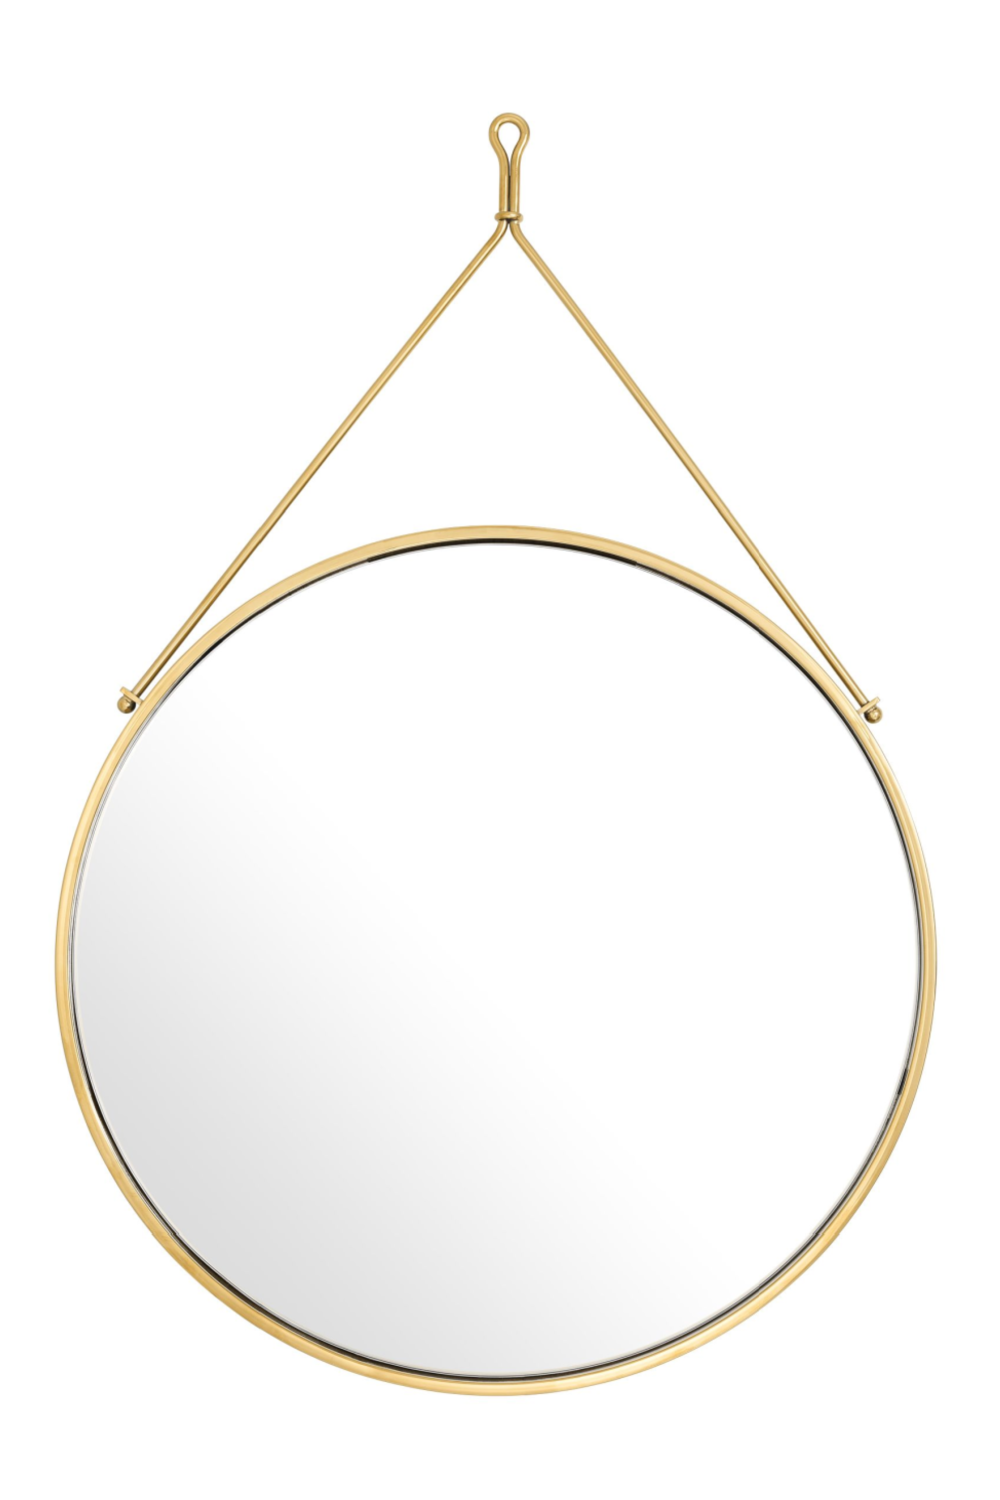 Gold Hook Wall Mirror | Eichholtz Morongo